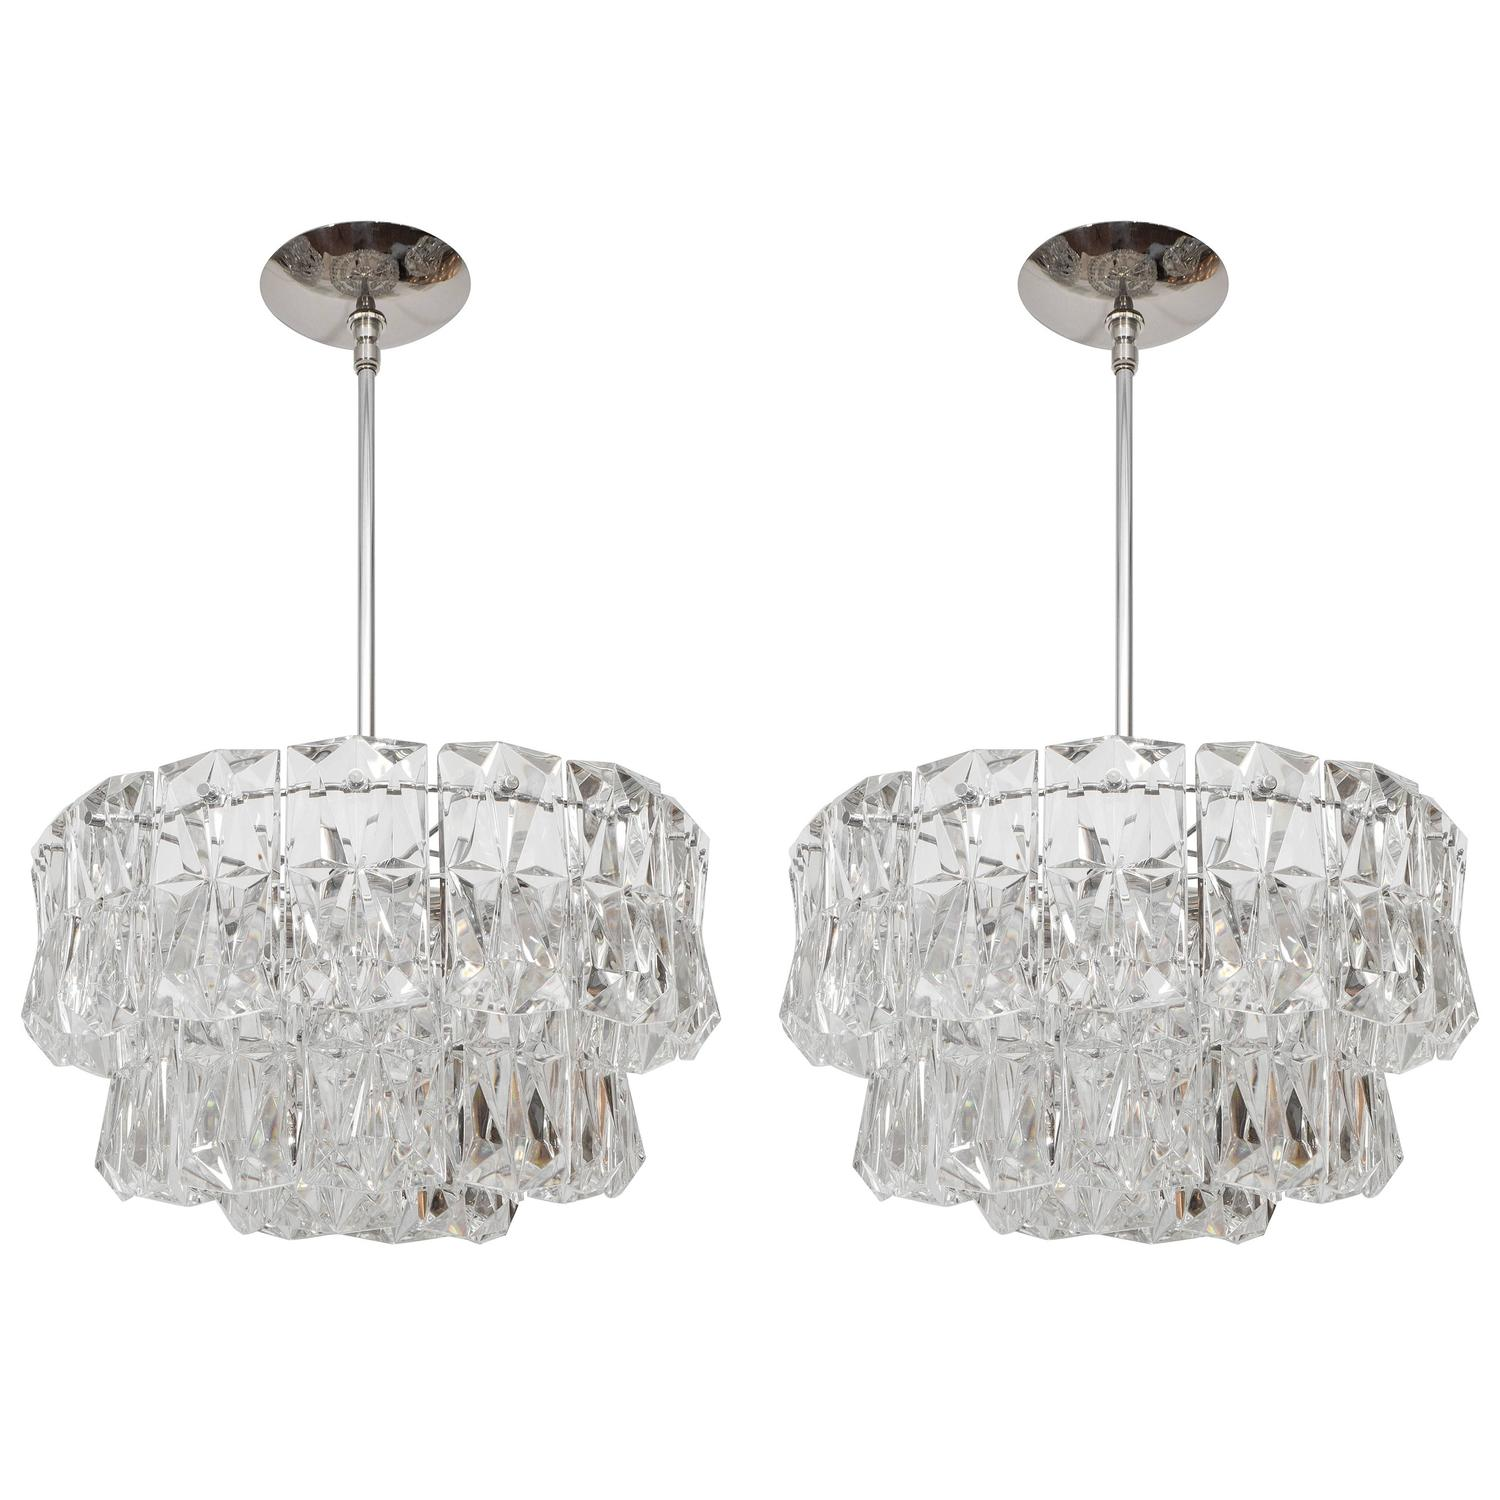 three tier facet cut crystal chandeliers for sale at 1stdibs